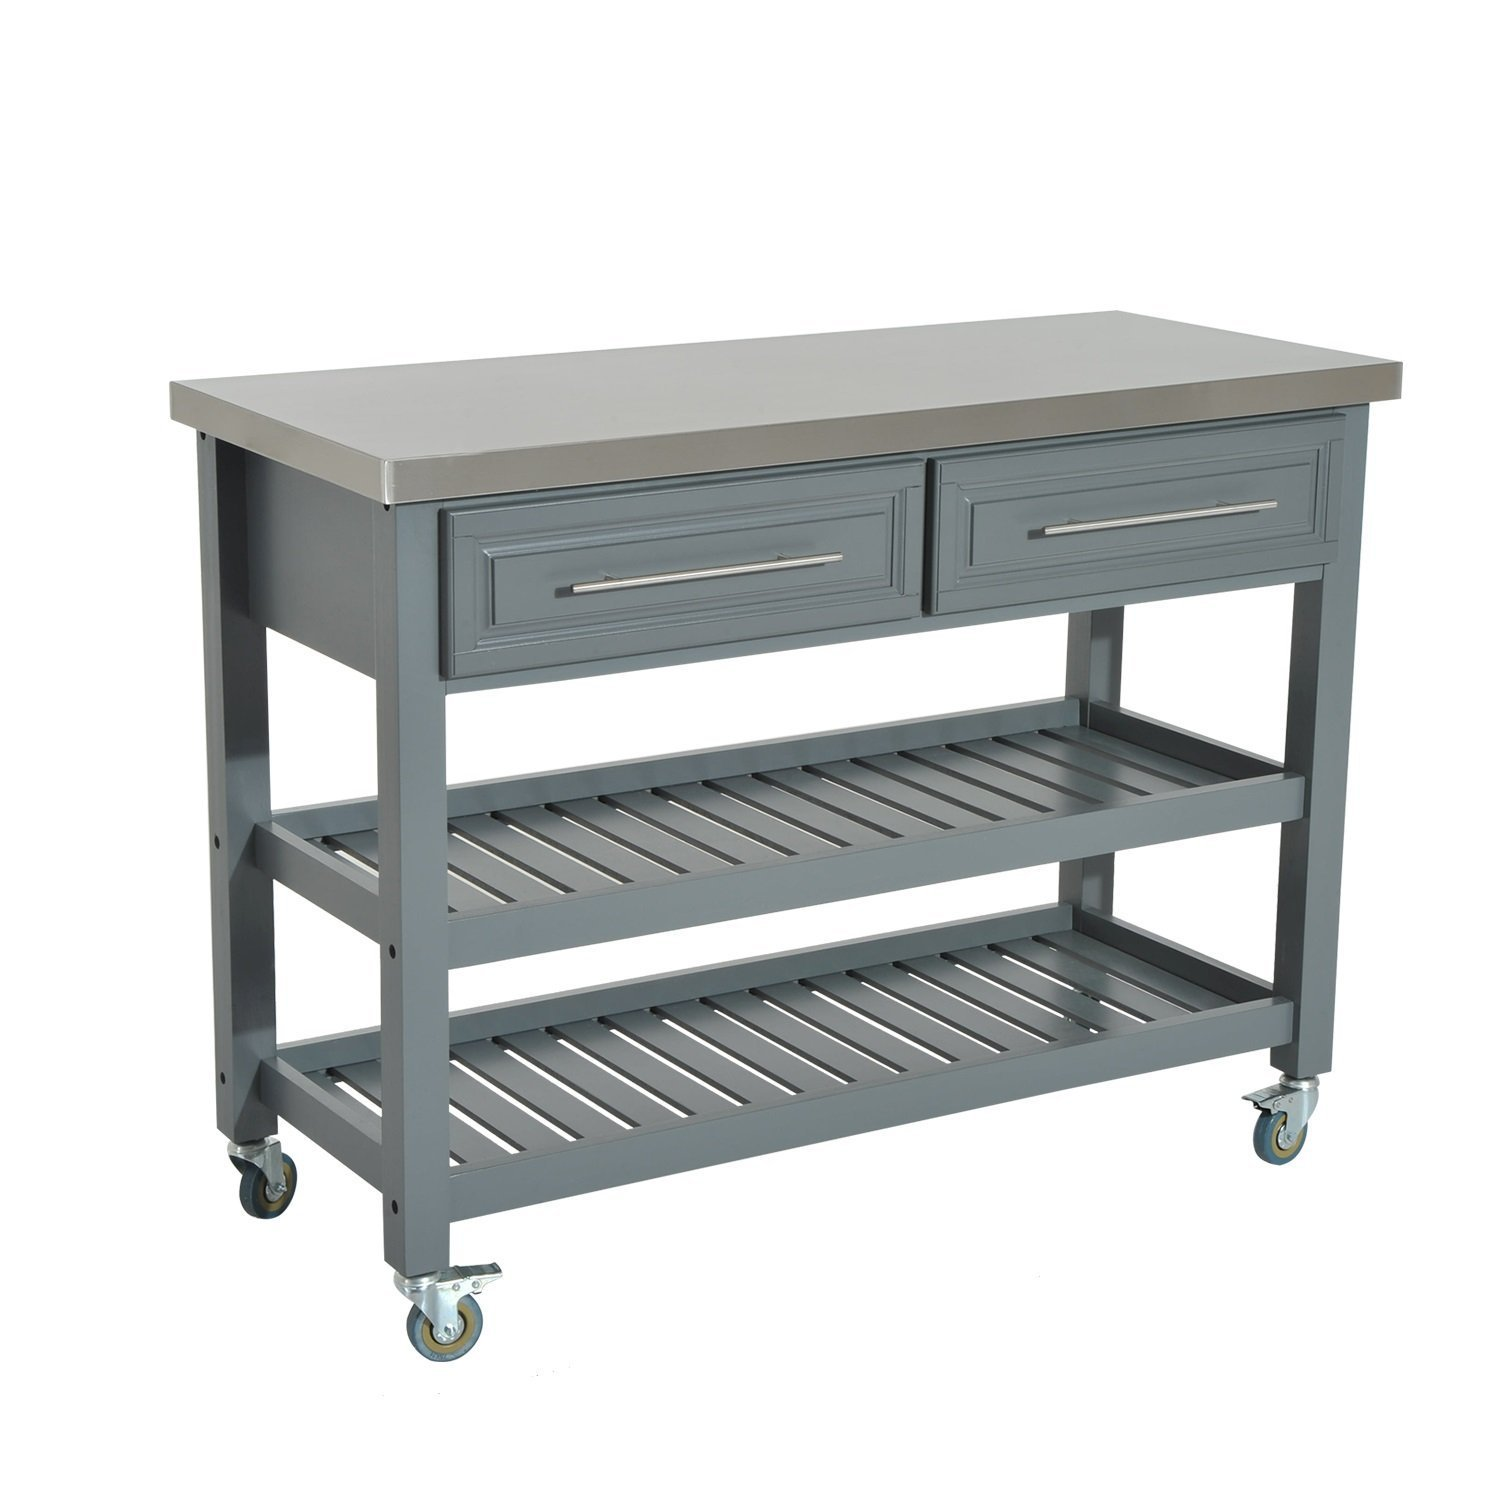 HomCom 47'' 3 Tier Stainless Steel Rolling Kitchen Cart With Shelves and Drawers by HOMCOM